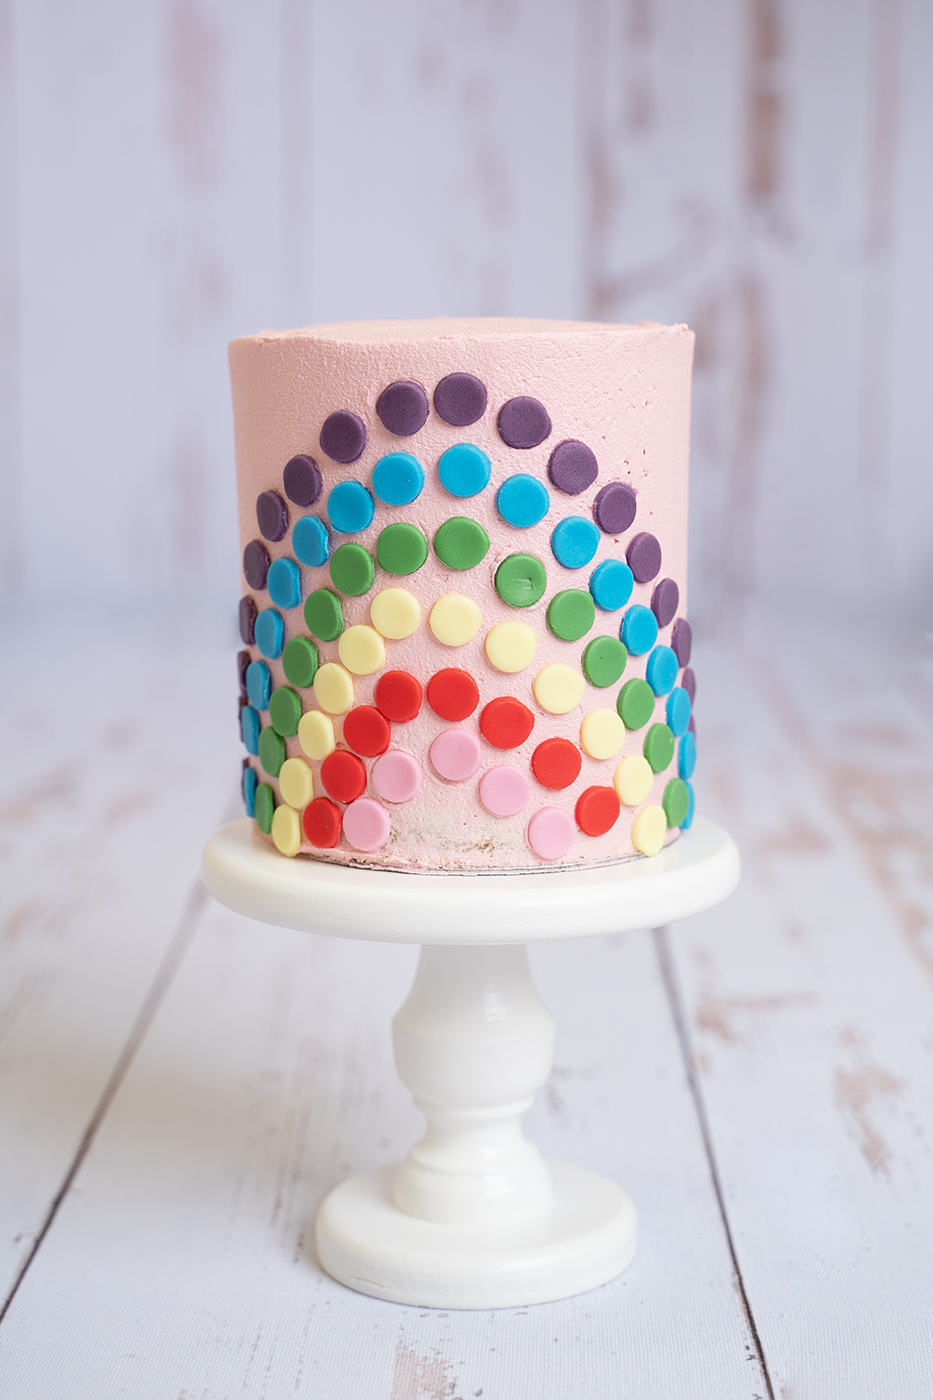 professional photo of a cake smash cake featuring pink icing and rainbow on front by cake smash photographer Edinburgh Beautiful Bairns Photography